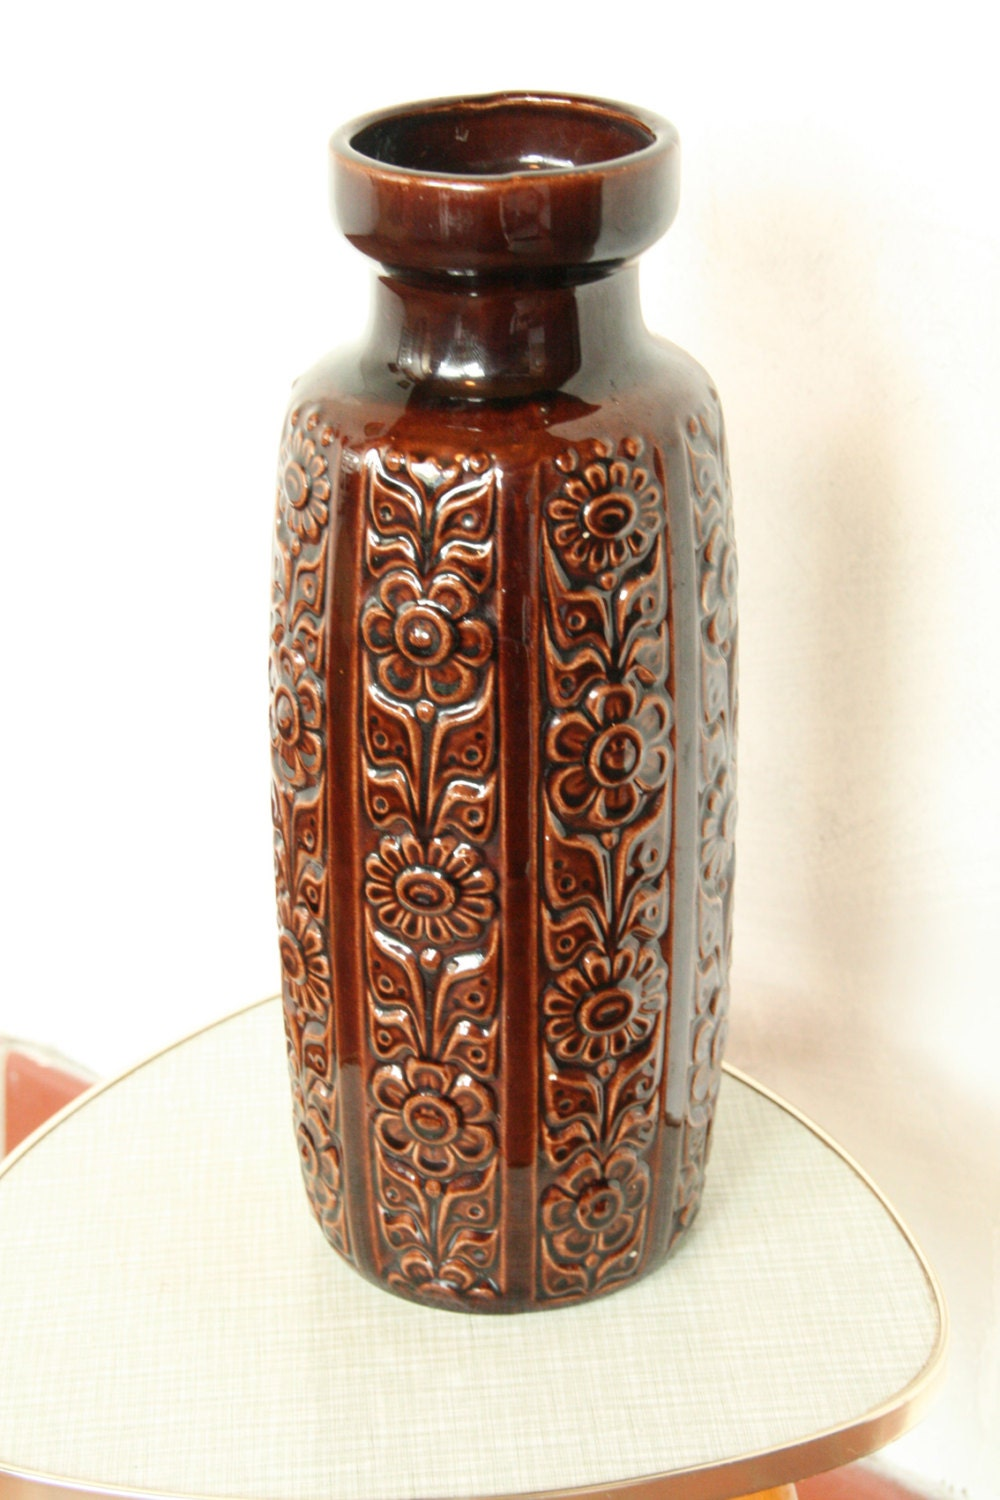 west german pottery by Scheurich 280/30